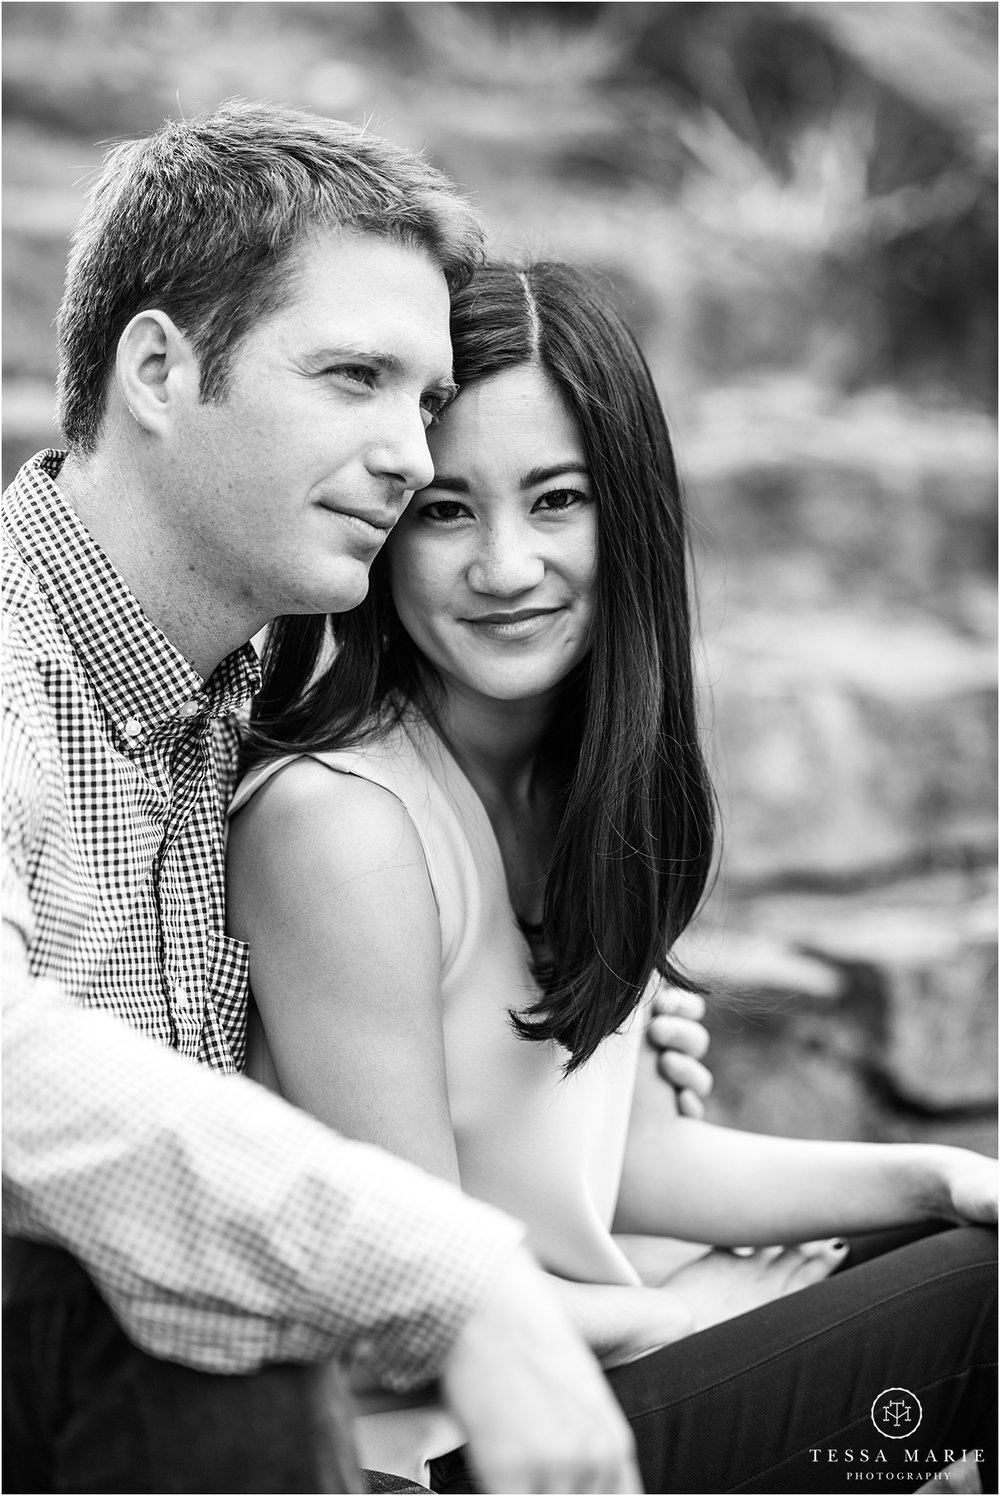 Tessa_marie_photography_wedding_photographer_engagement_pictures_piedmont_park_0085.jpg